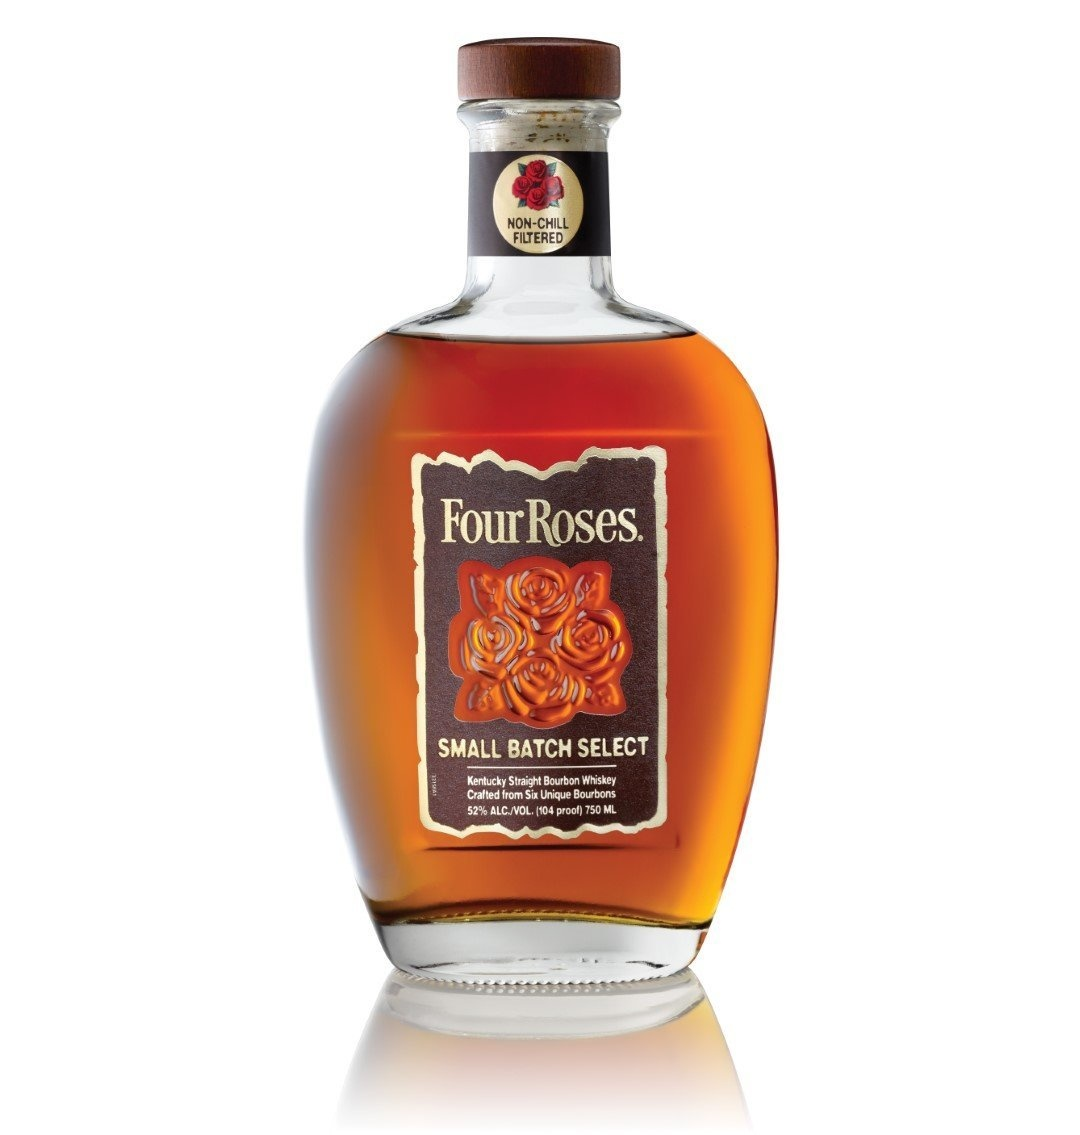 Four Roses Small Batch Select Kentucky Straight Bourbon Whiskey Crafted From 6 Unique Bourbons 104Pf. 750ml